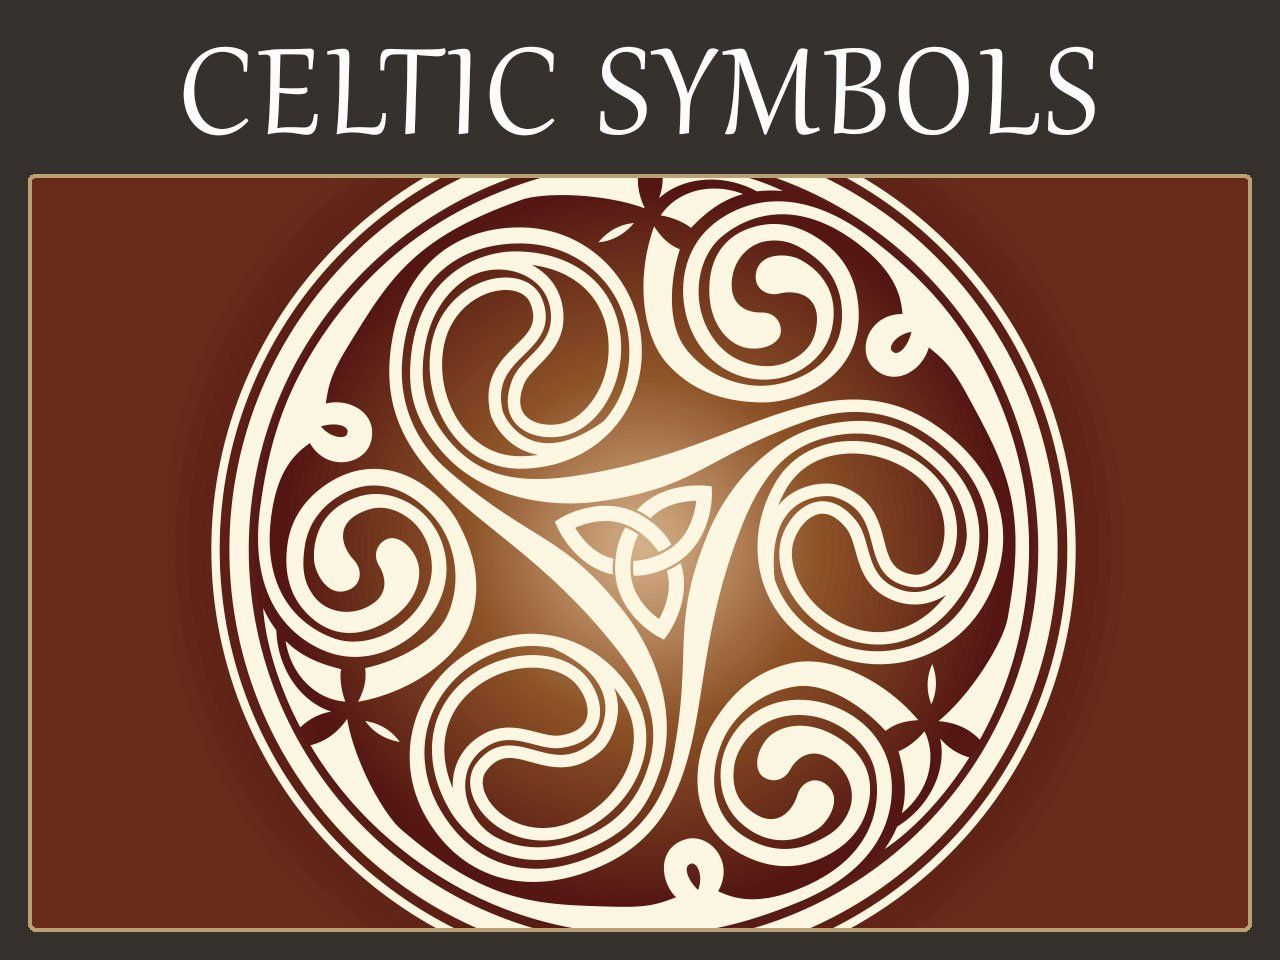 A list of truly enchanting irish celtic symbols and their meanings a list of truly enchanting irish celtic symbols and their meanings celtic trinity knot trinity knot and triquetra biocorpaavc Choice Image